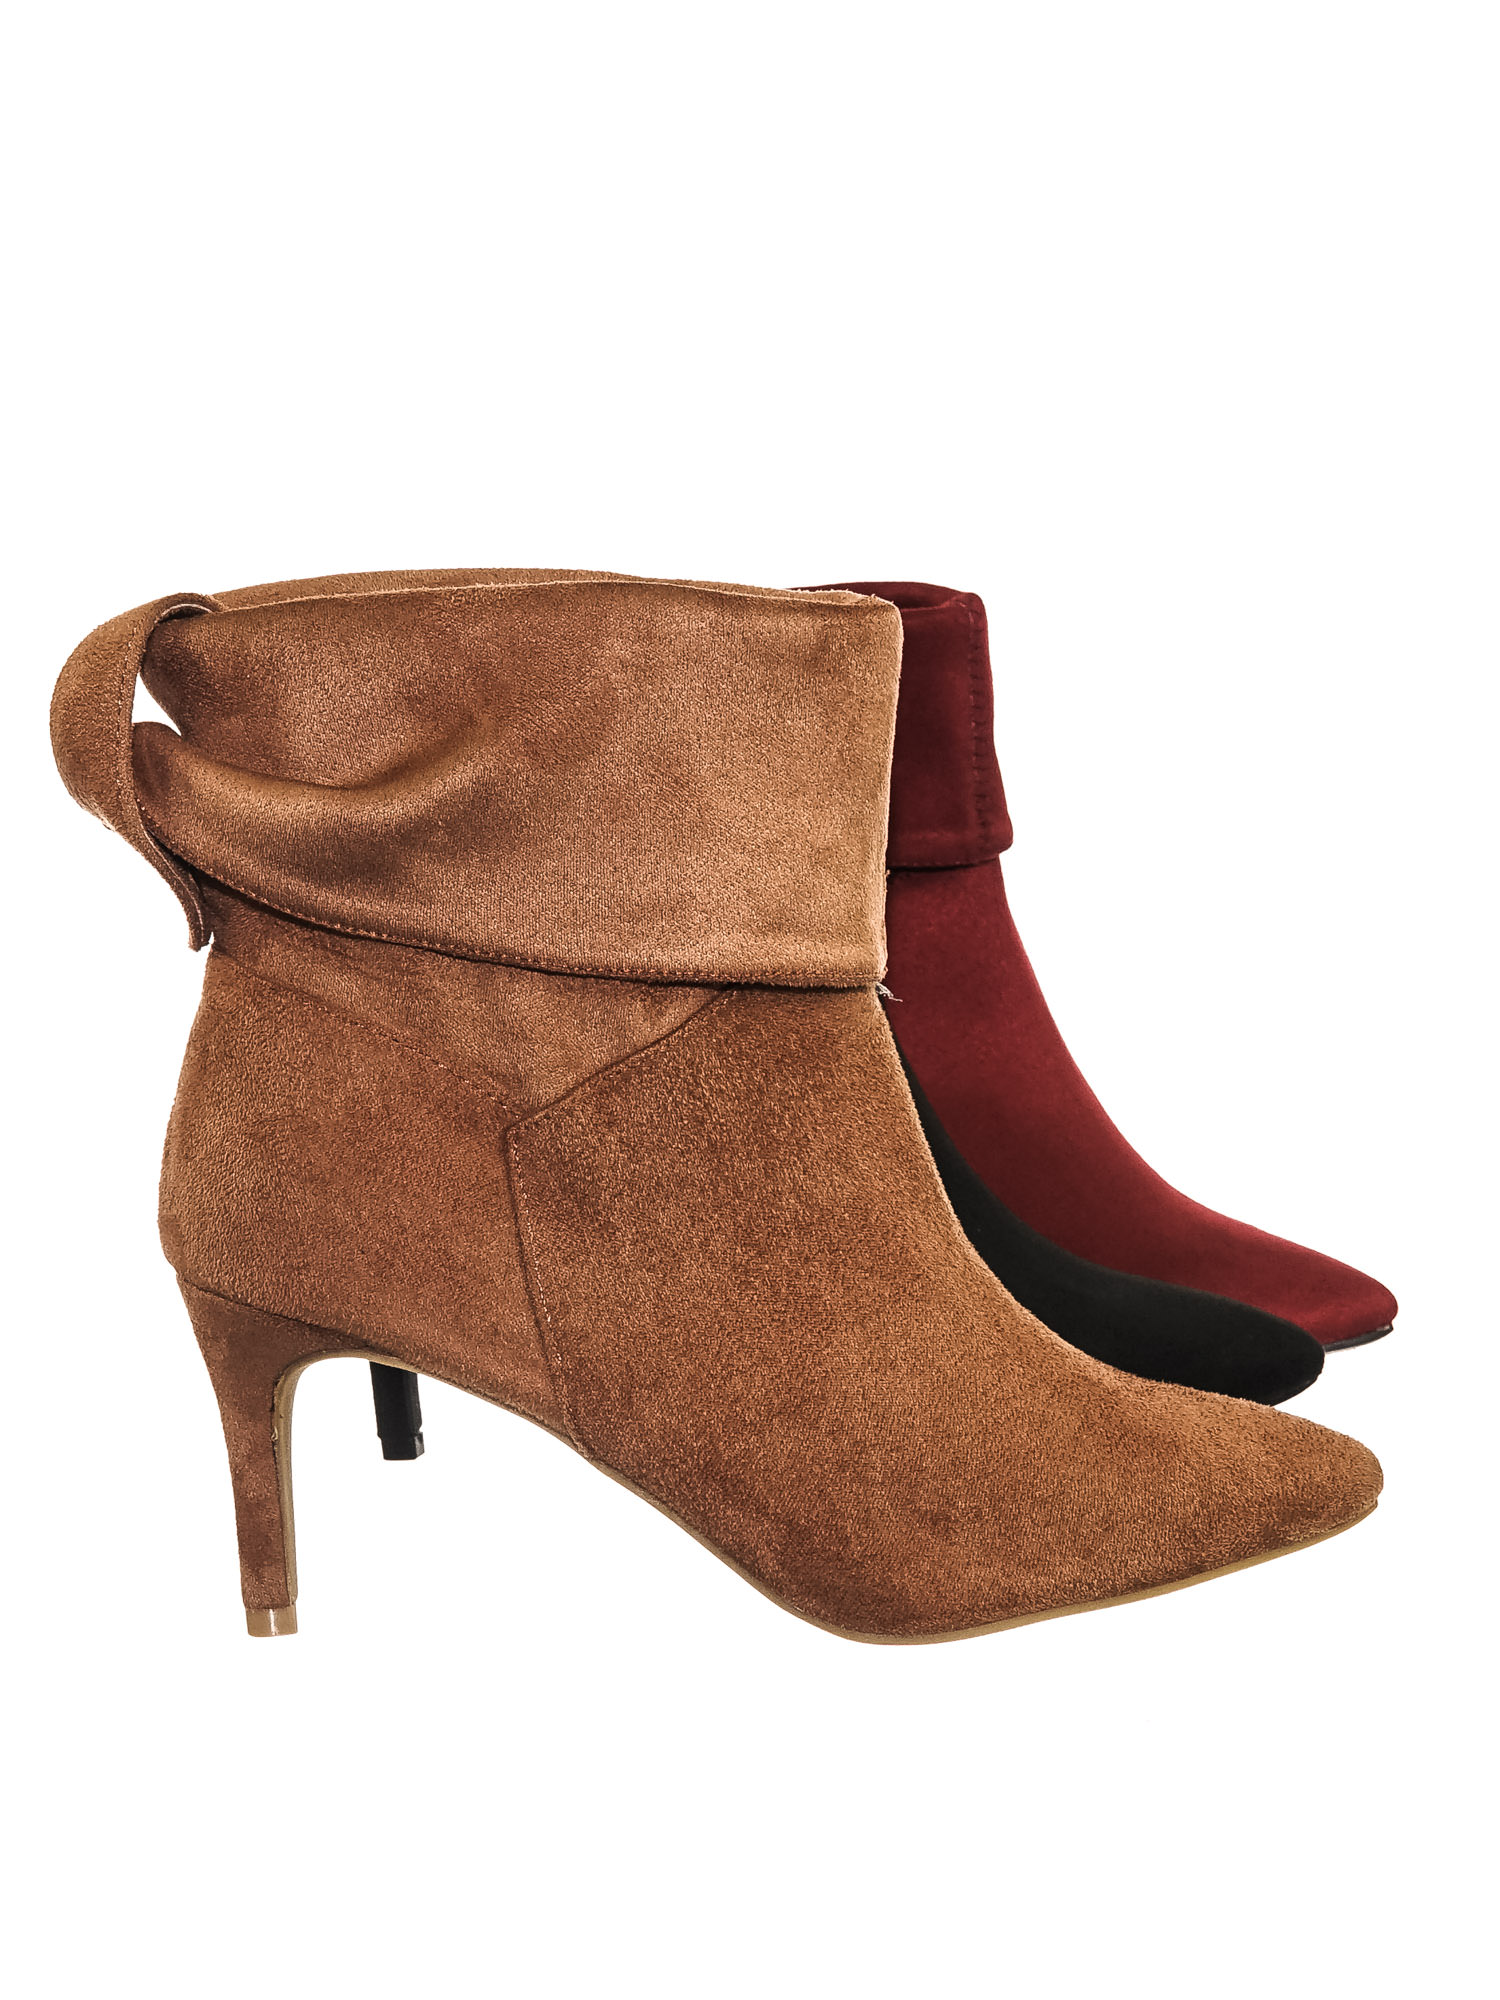 Longing15 by Bamboo, Pointed Toe Slouch Dress Boots w Buckled Flap